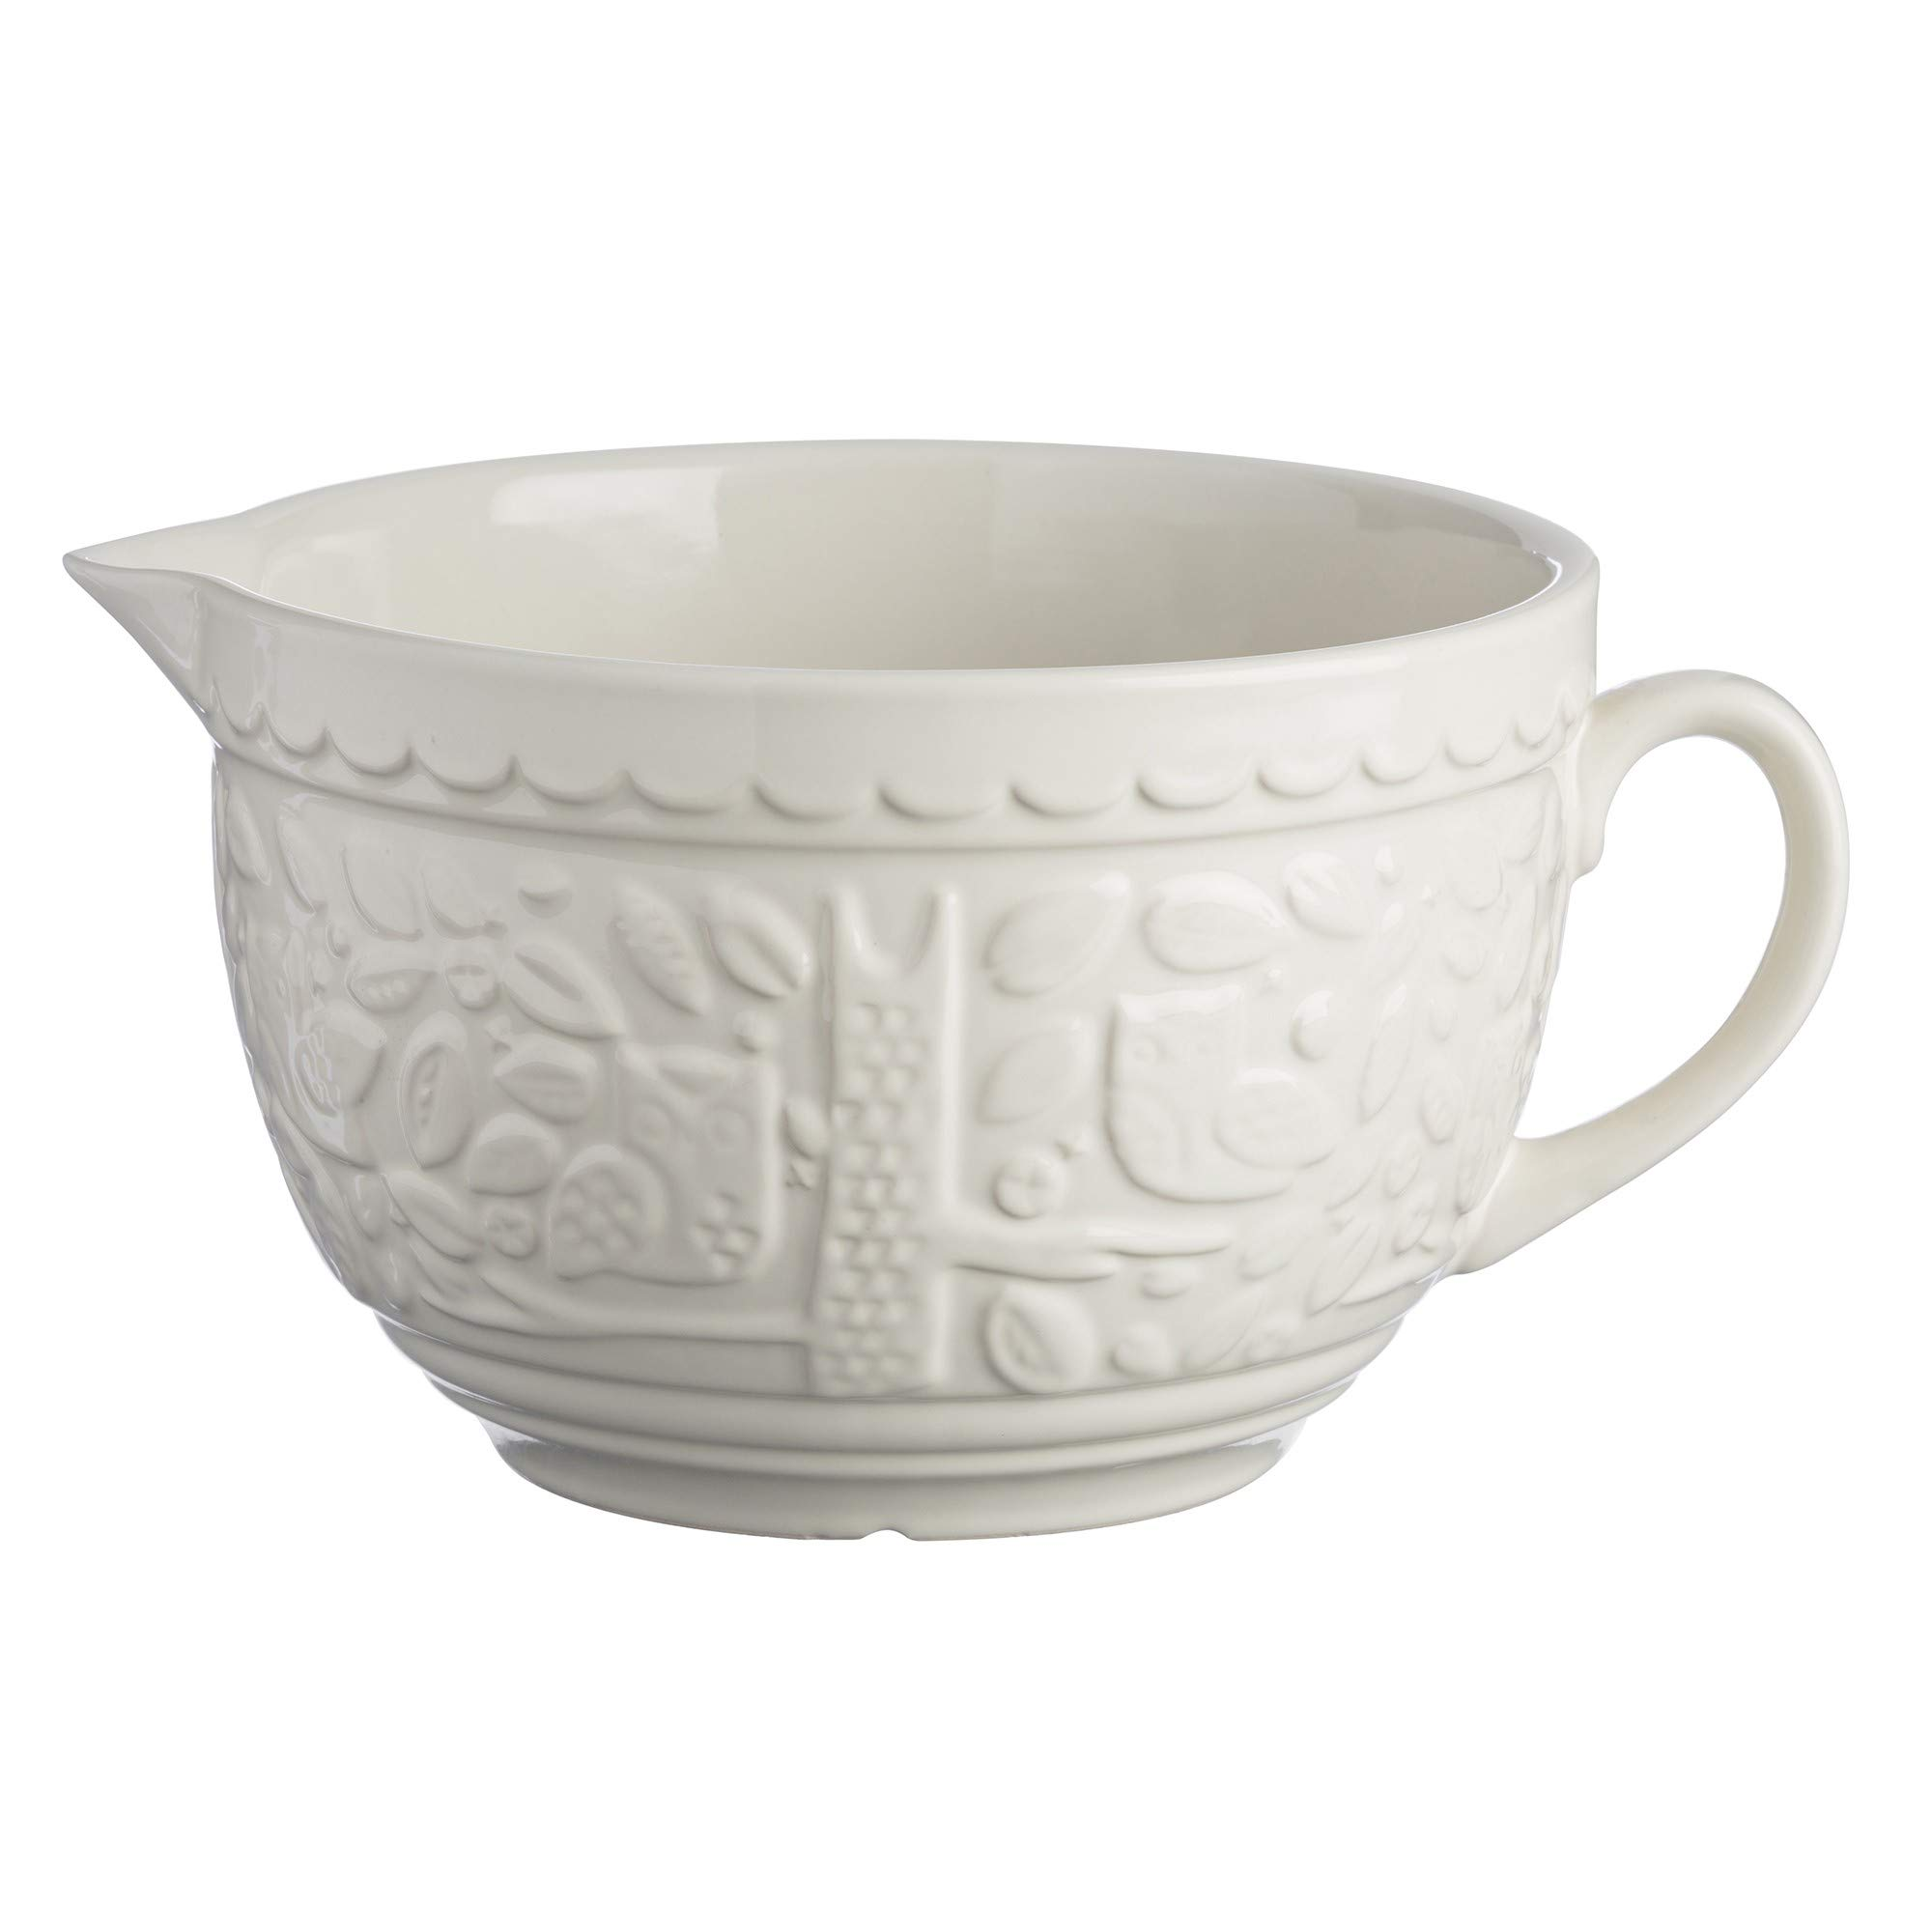 Mason Cash In The Forest Stoneware Batter Bowl, Large Handled Jug with Pouring Spout, 9-3/4-Inches by 7-1/2-Inches by 5-Inches, Cream by Mason Cash